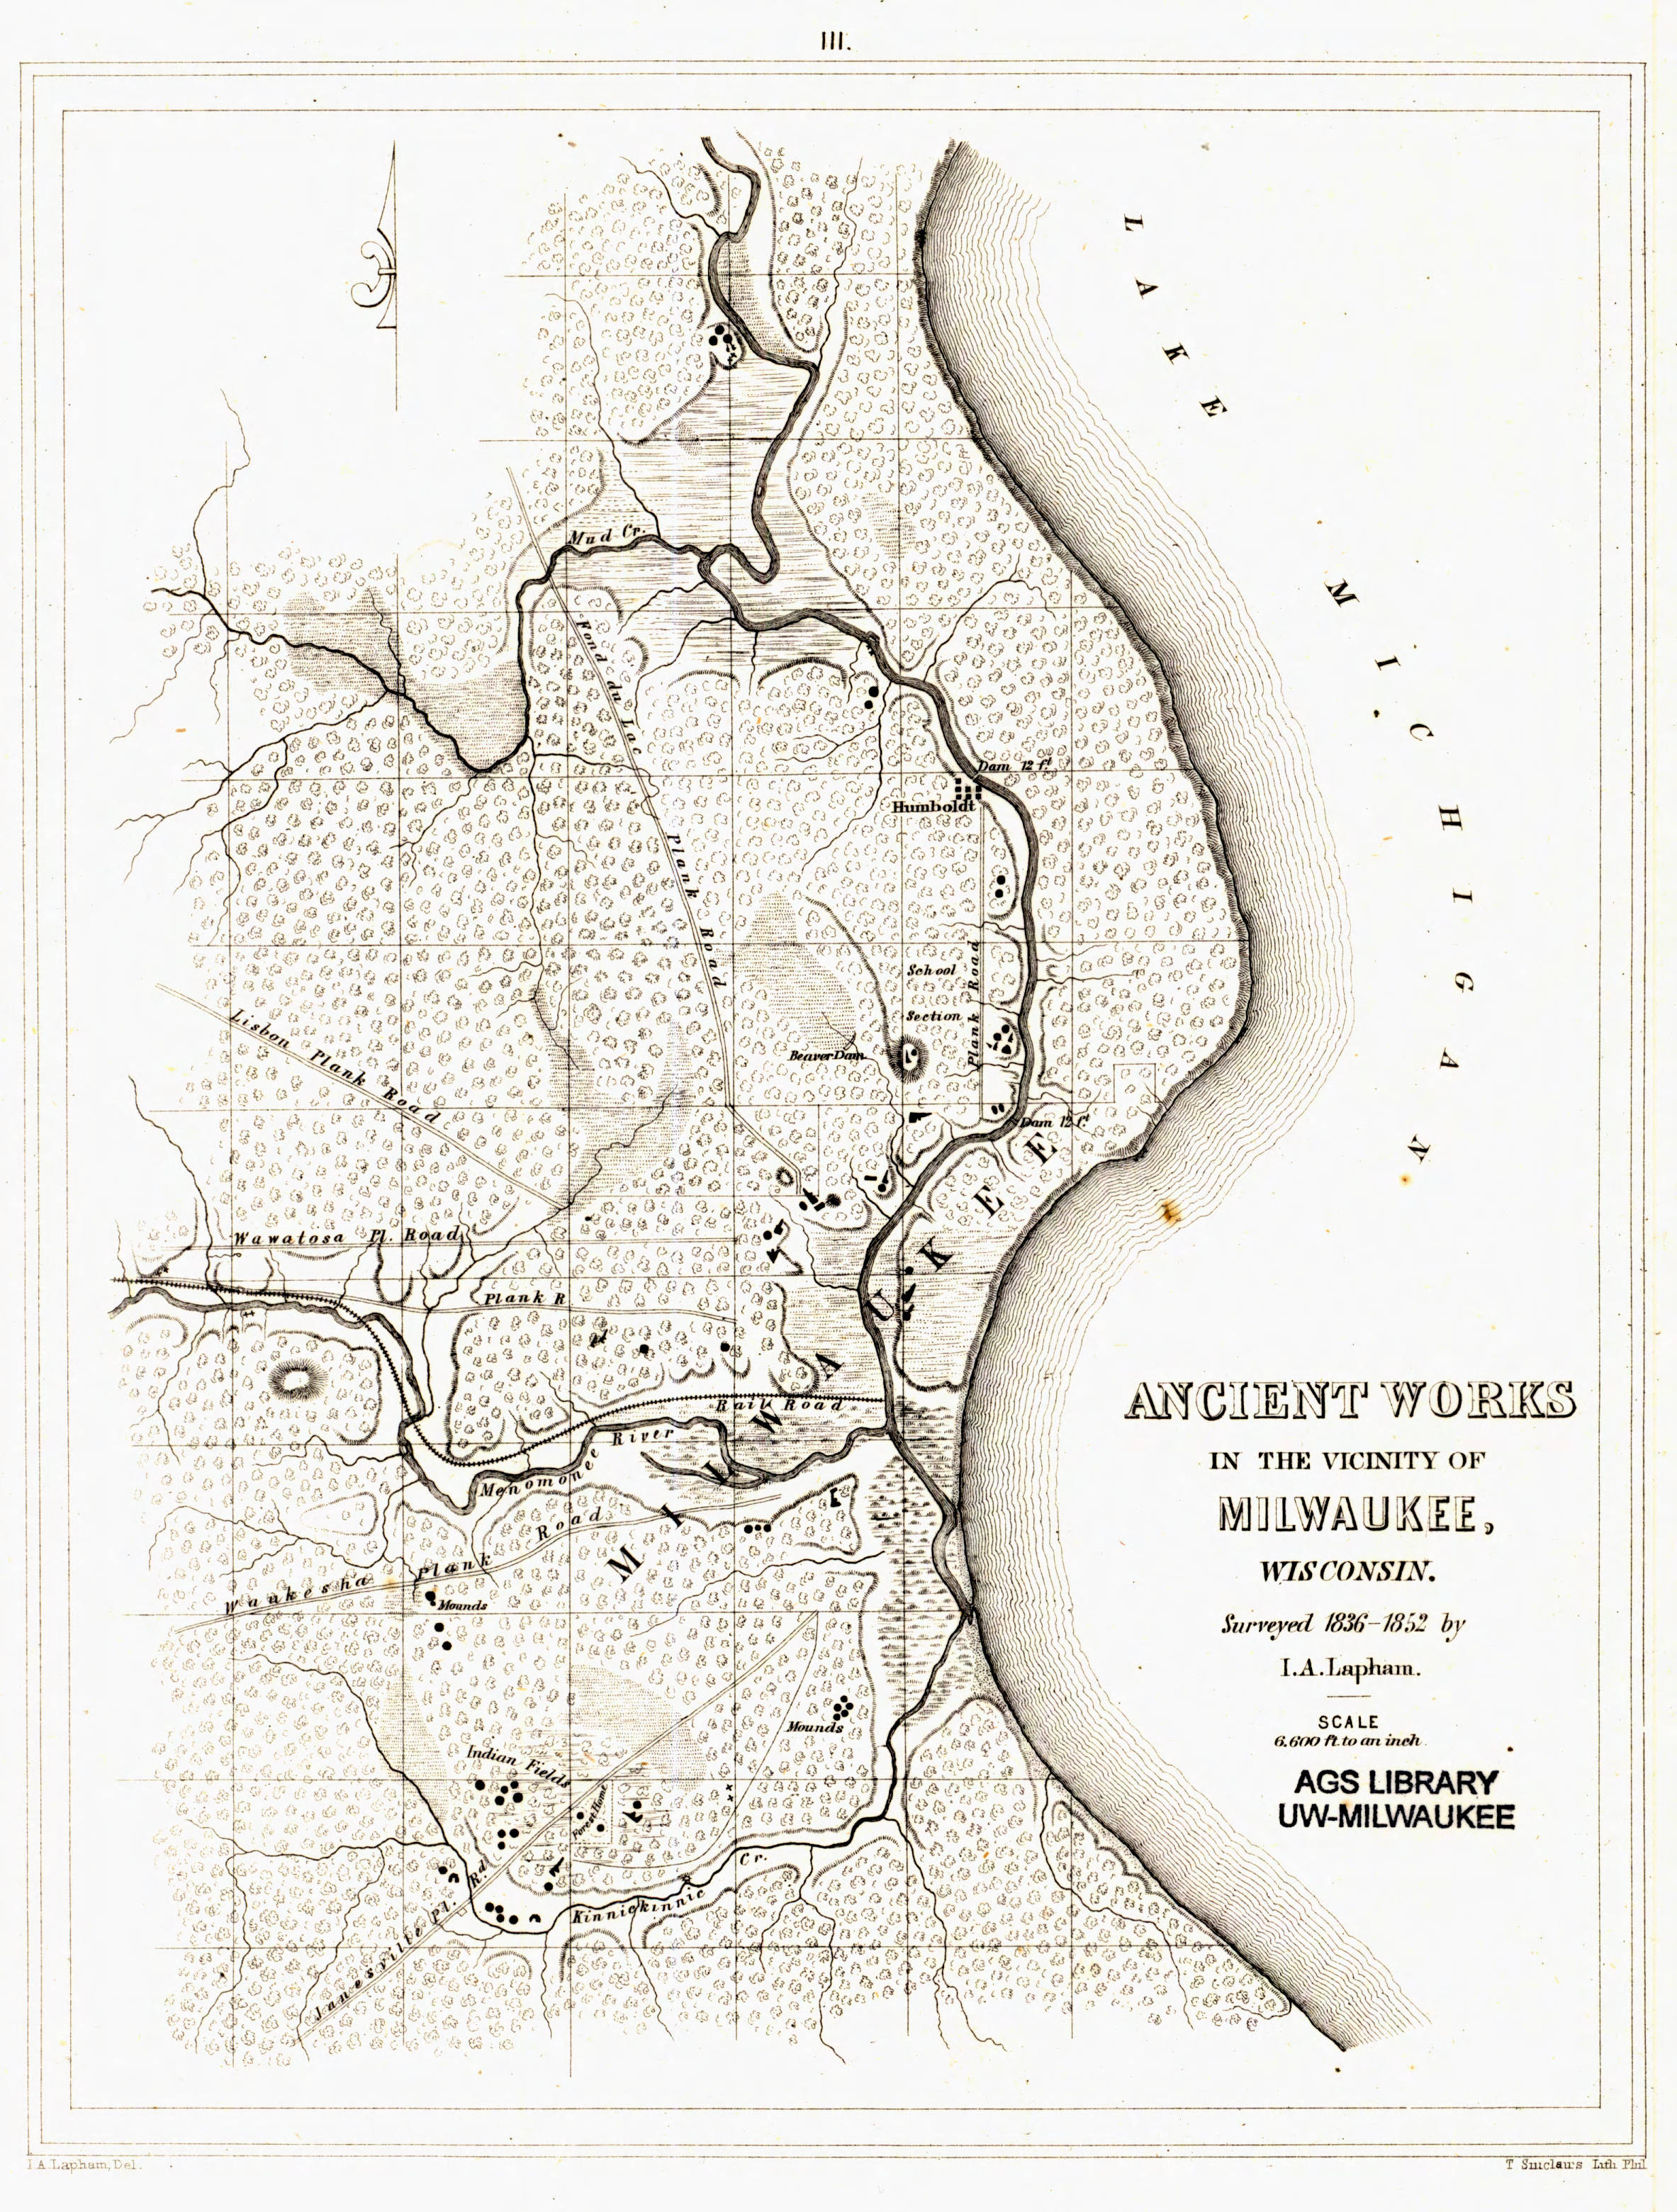 <table class=&quot;lightbox&quot;><tr><td colspan=2 class=&quot;lightbox-title&quot;>Effigy Mound Locations</td></tr><tr><td colspan=2 class=&quot;lightbox-caption&quot;>A survey by 19th century scientist Increase Lapham showed &quot;ancient works&quot; in the Milwaukee area, including effigy mounds.</td></tr><tr><td colspan=2 class=&quot;lightbox-spacer&quot;></td></tr><tr class=&quot;lightbox-detail&quot;><td class=&quot;cell-title&quot;>Source: </td><td class=&quot;cell-value&quot;>From the American Geographical Society Library Digital Map Collection. University of Wisconsin-Milwaukee Libraries.<br /><a href=&quot;https://collections.lib.uwm.edu/digital/collection/agdm/id/58/rec/1&quot; target=&quot;_blank&quot;>University of Wisconsin-Milwaukee Libraries</a></td></tr><tr class=&quot;filler-row&quot;><td colspan=2>&nbsp;</td></tr></table>